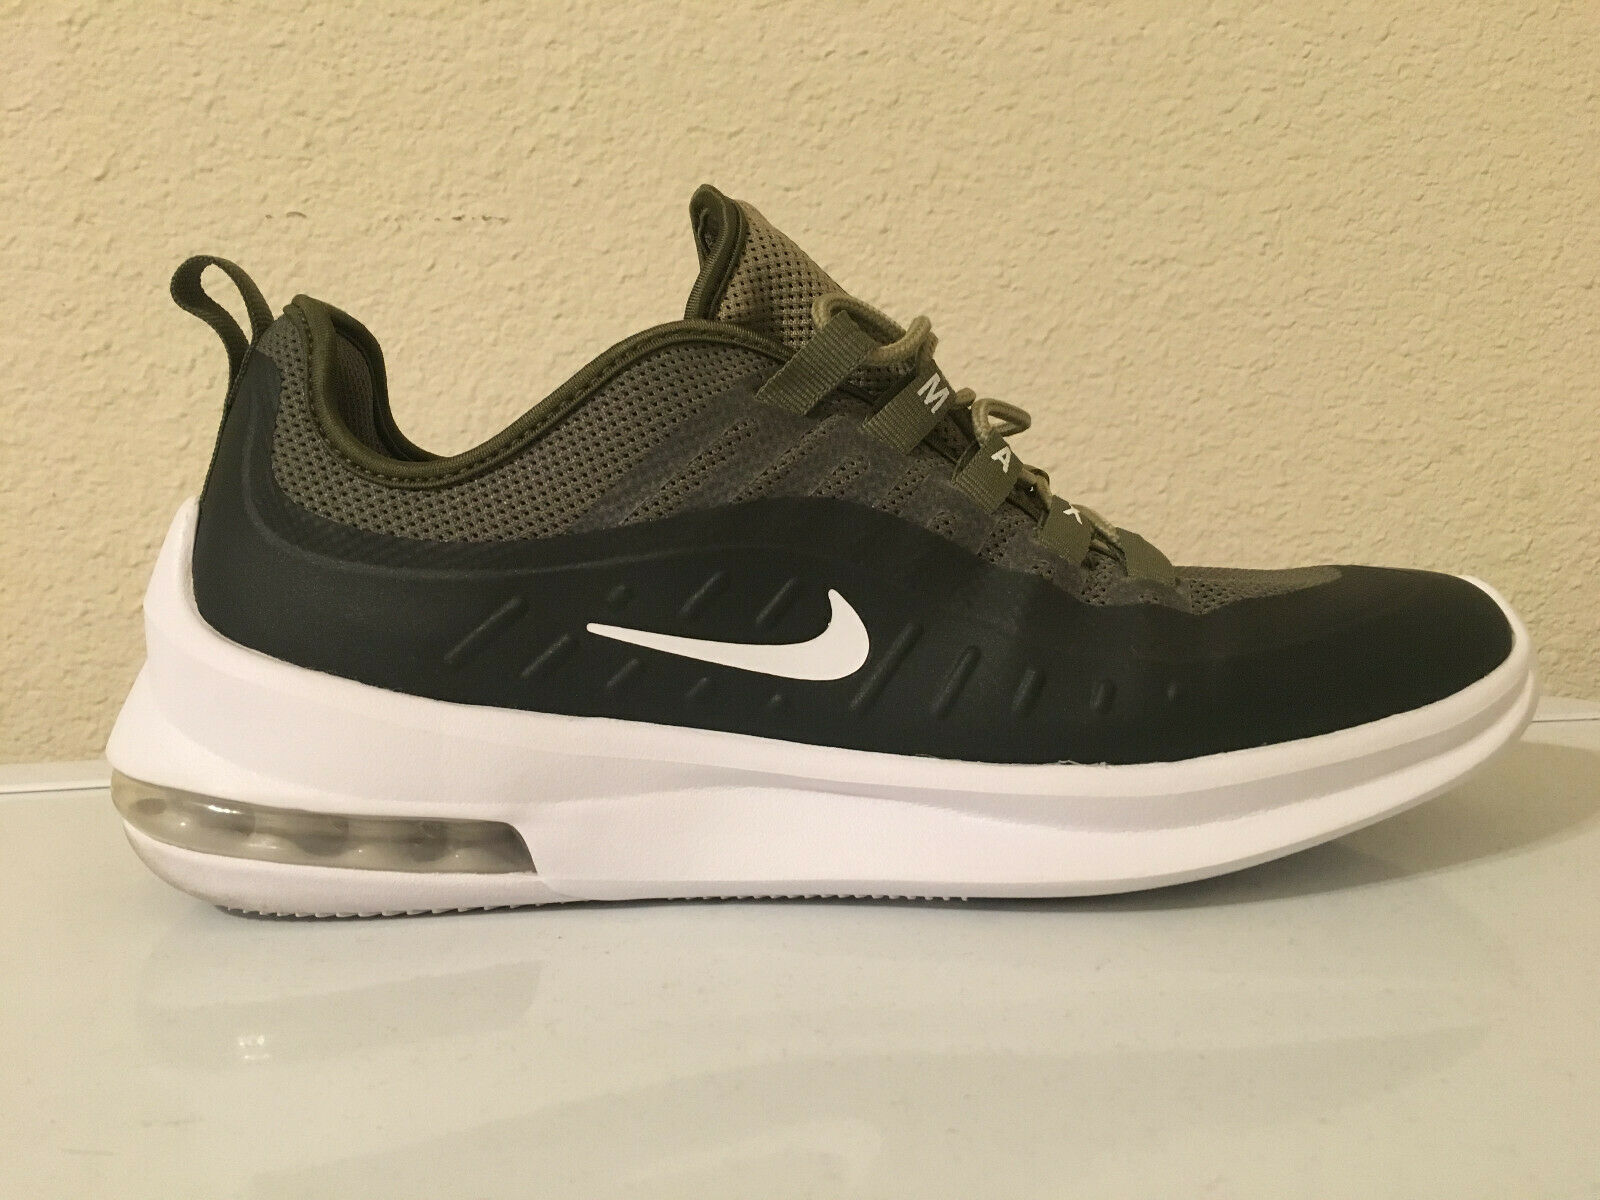 Nike Air Max Axis shoes - Olive White - Size 9.5